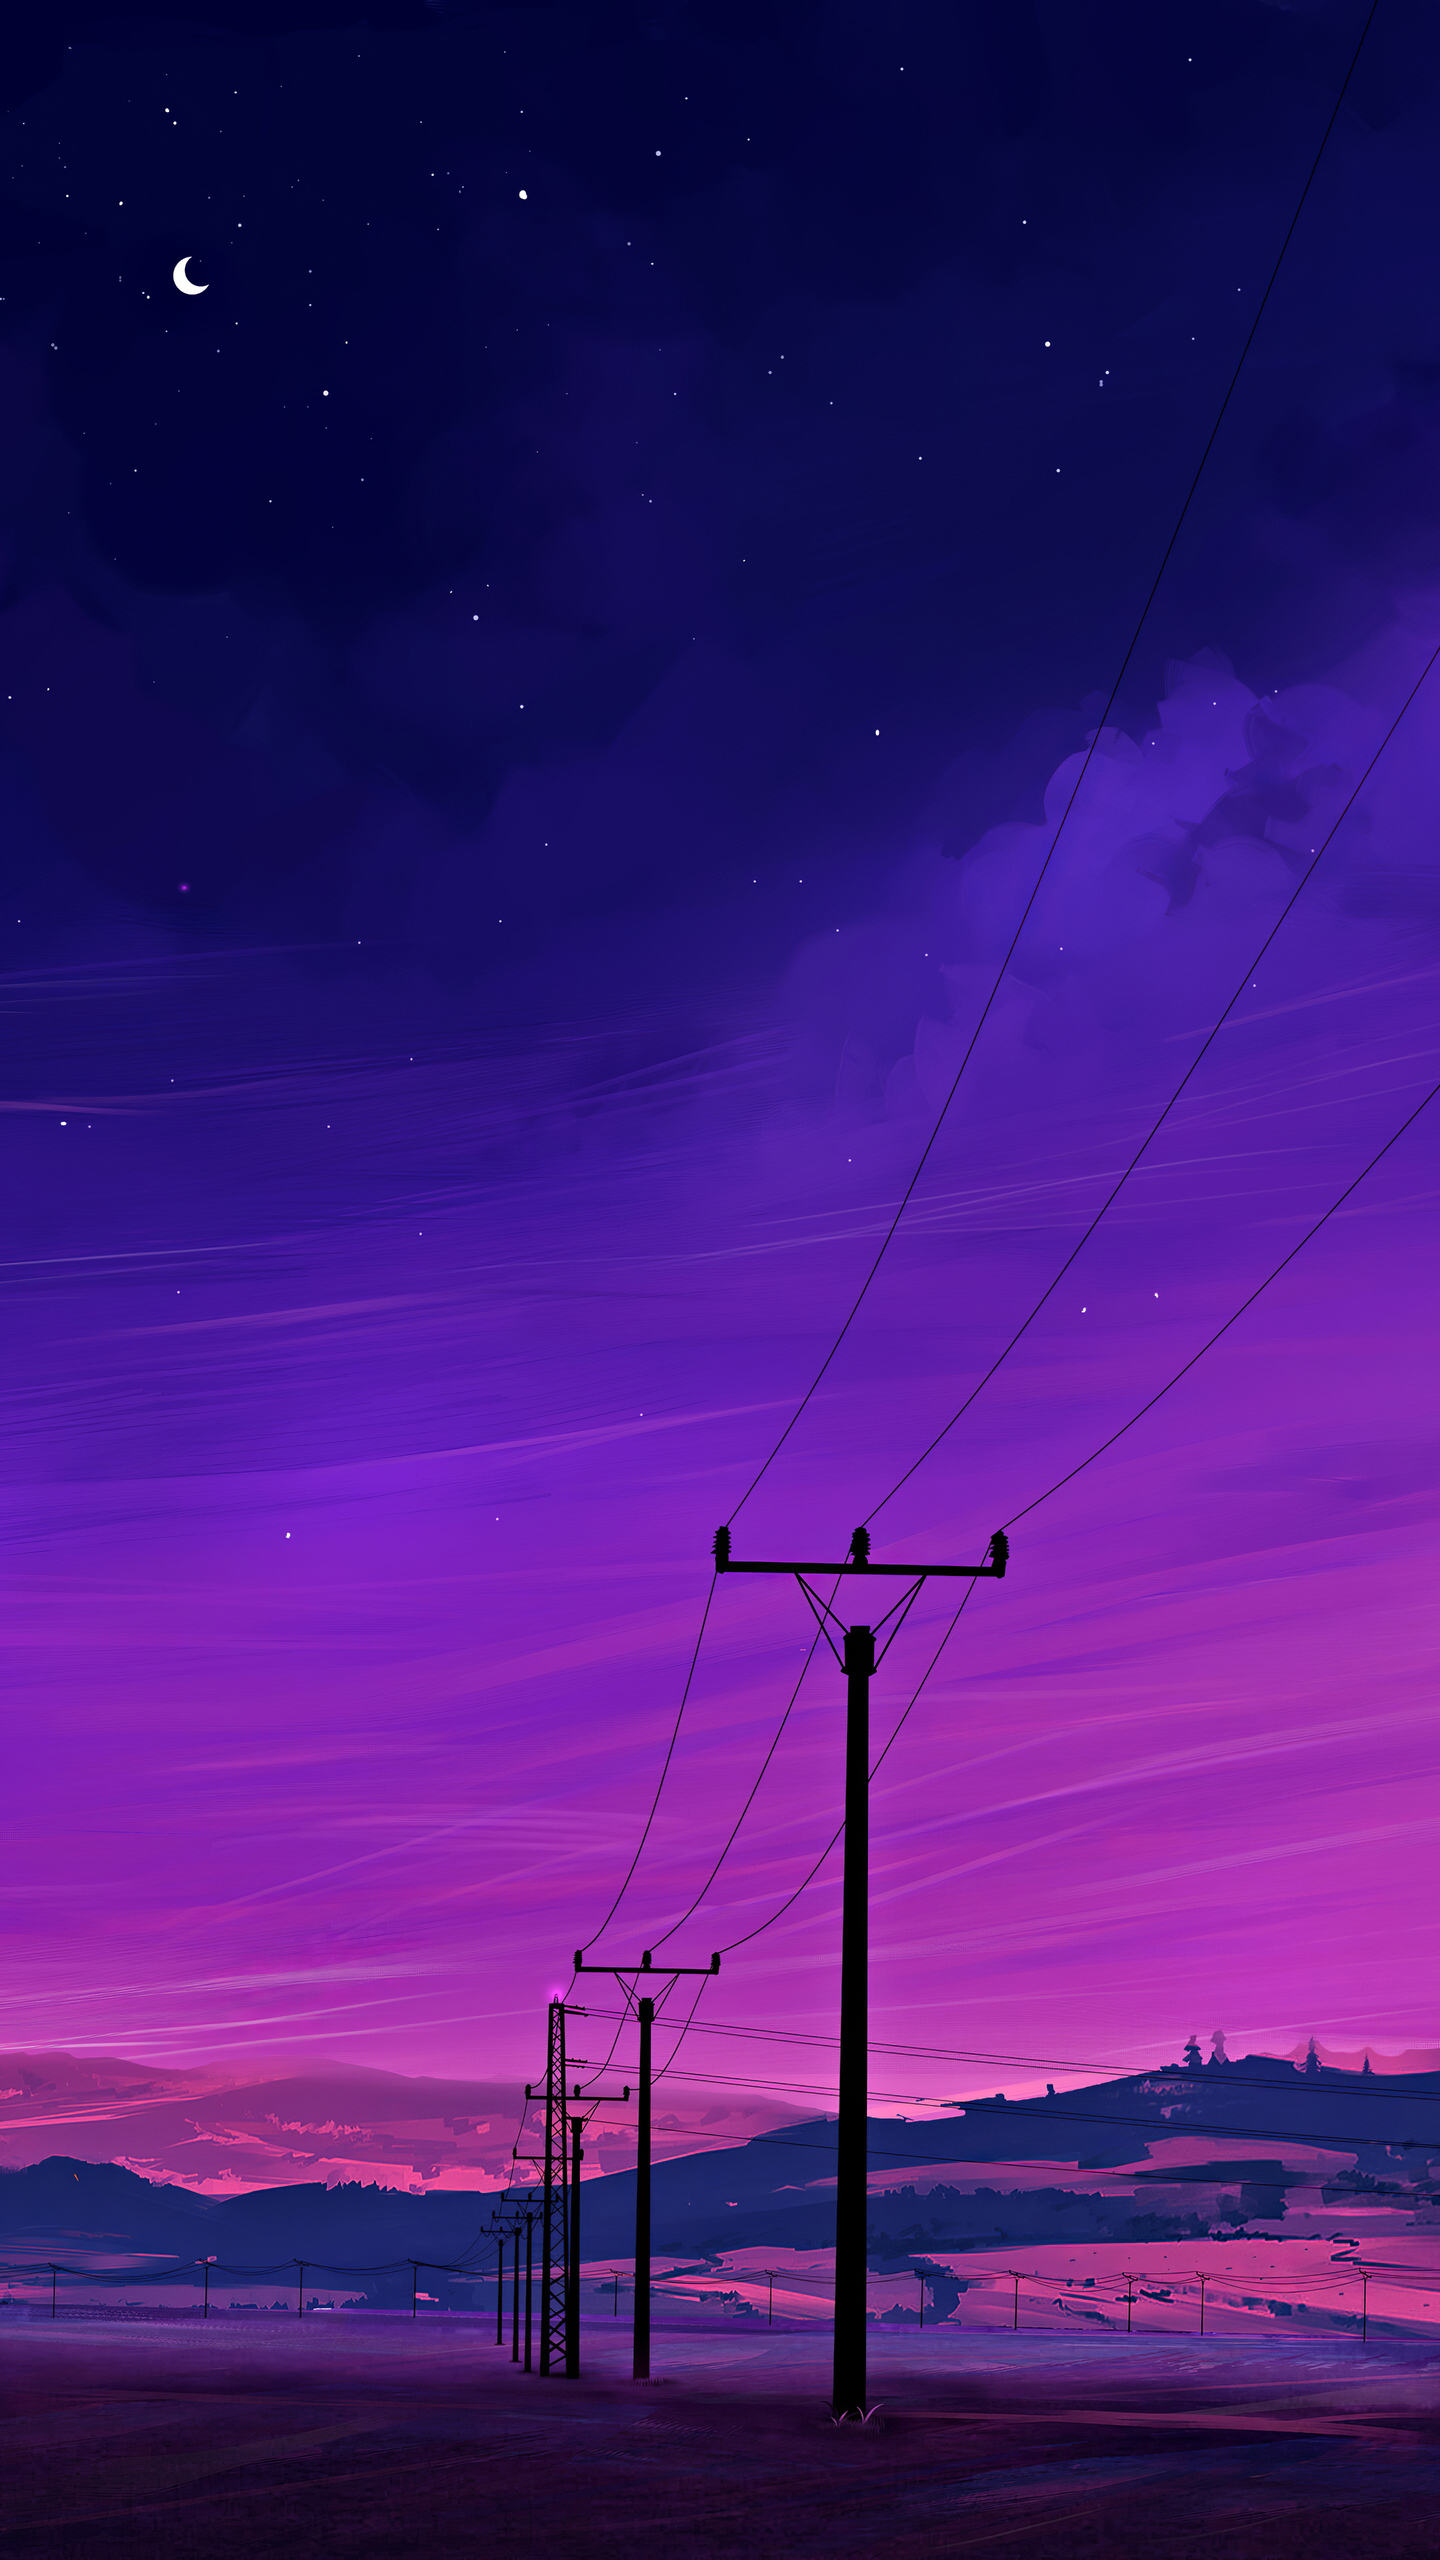 cable-lines-4k-tl.jpg